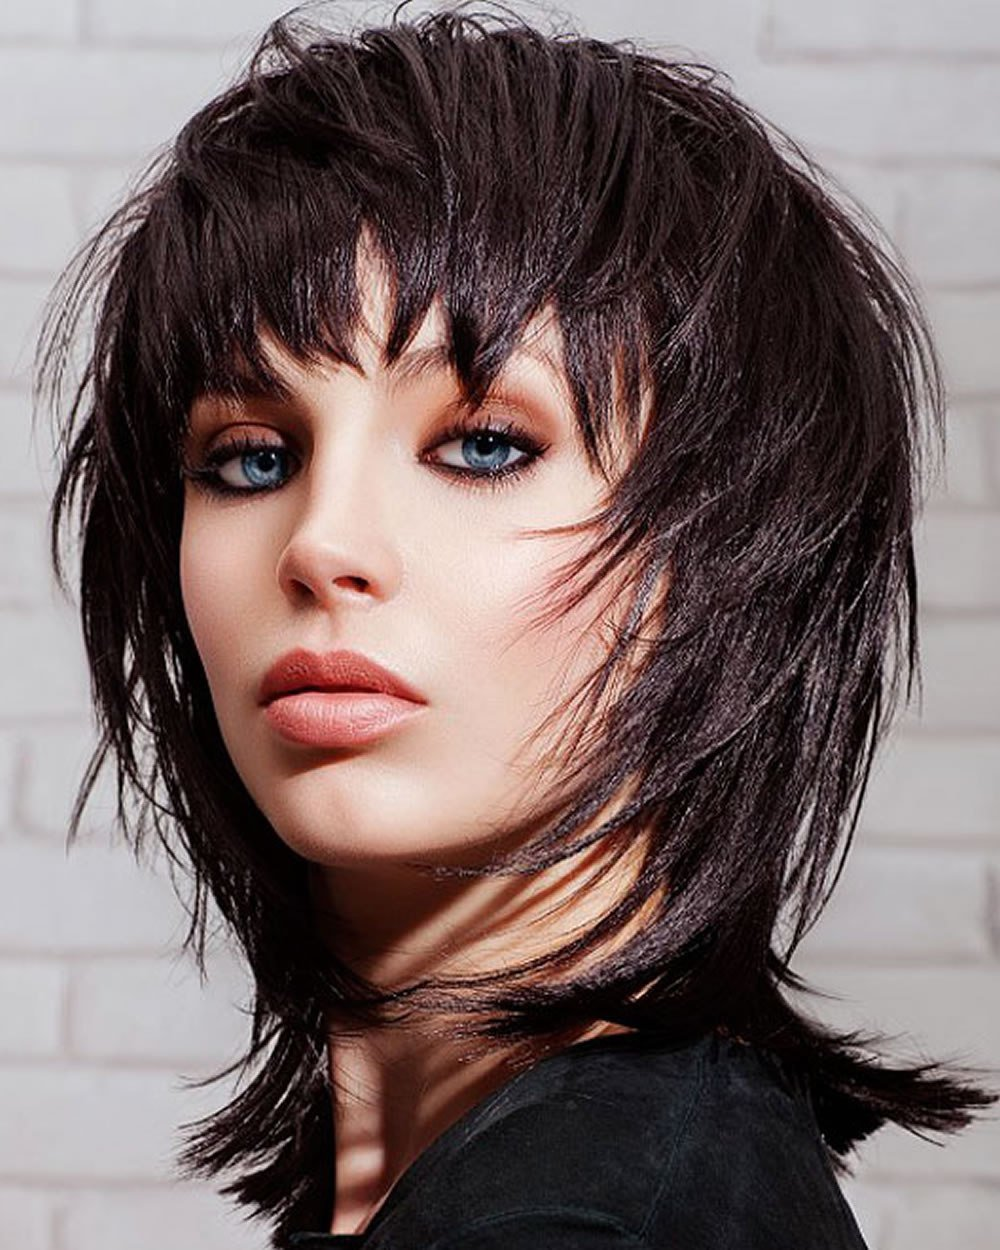 New Easy Short Hairstyles For Fine Hair – Latest Pixie And Short Haircuts For 2018 2019 11 Ideas With Pictures